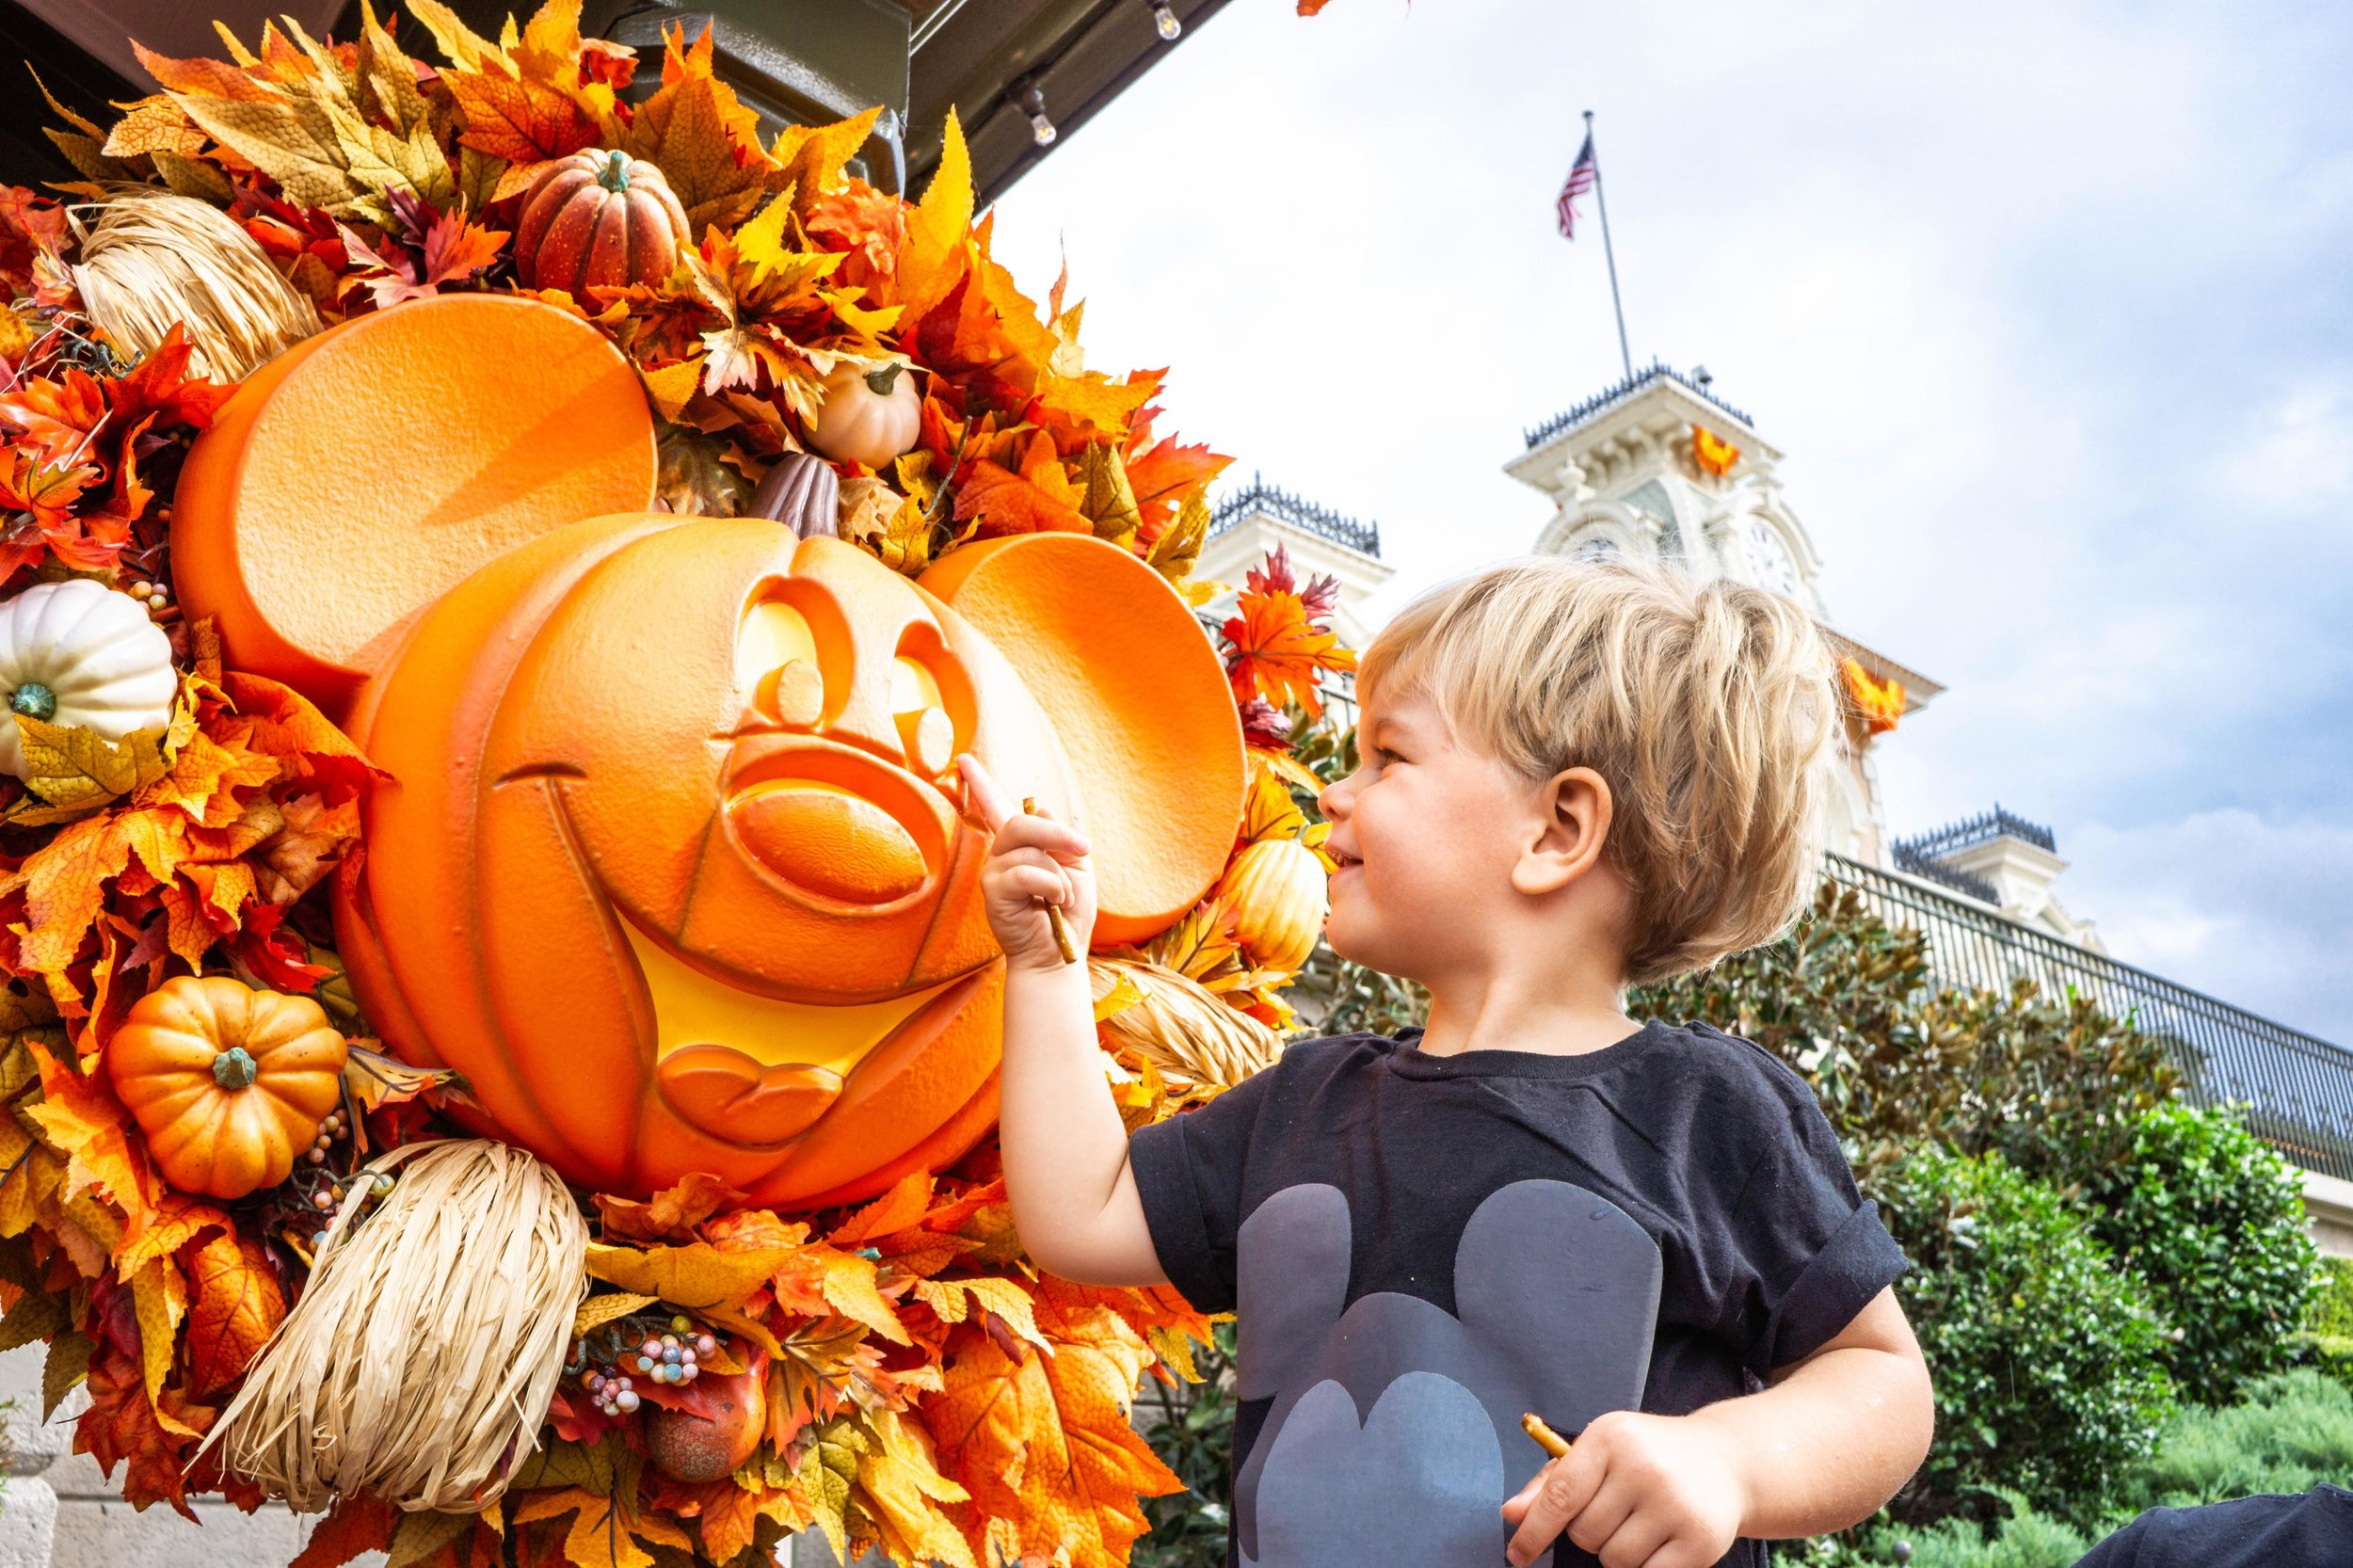 Our bud loves pumpkins & mickey, so he was so excited to see mickey pumpkins